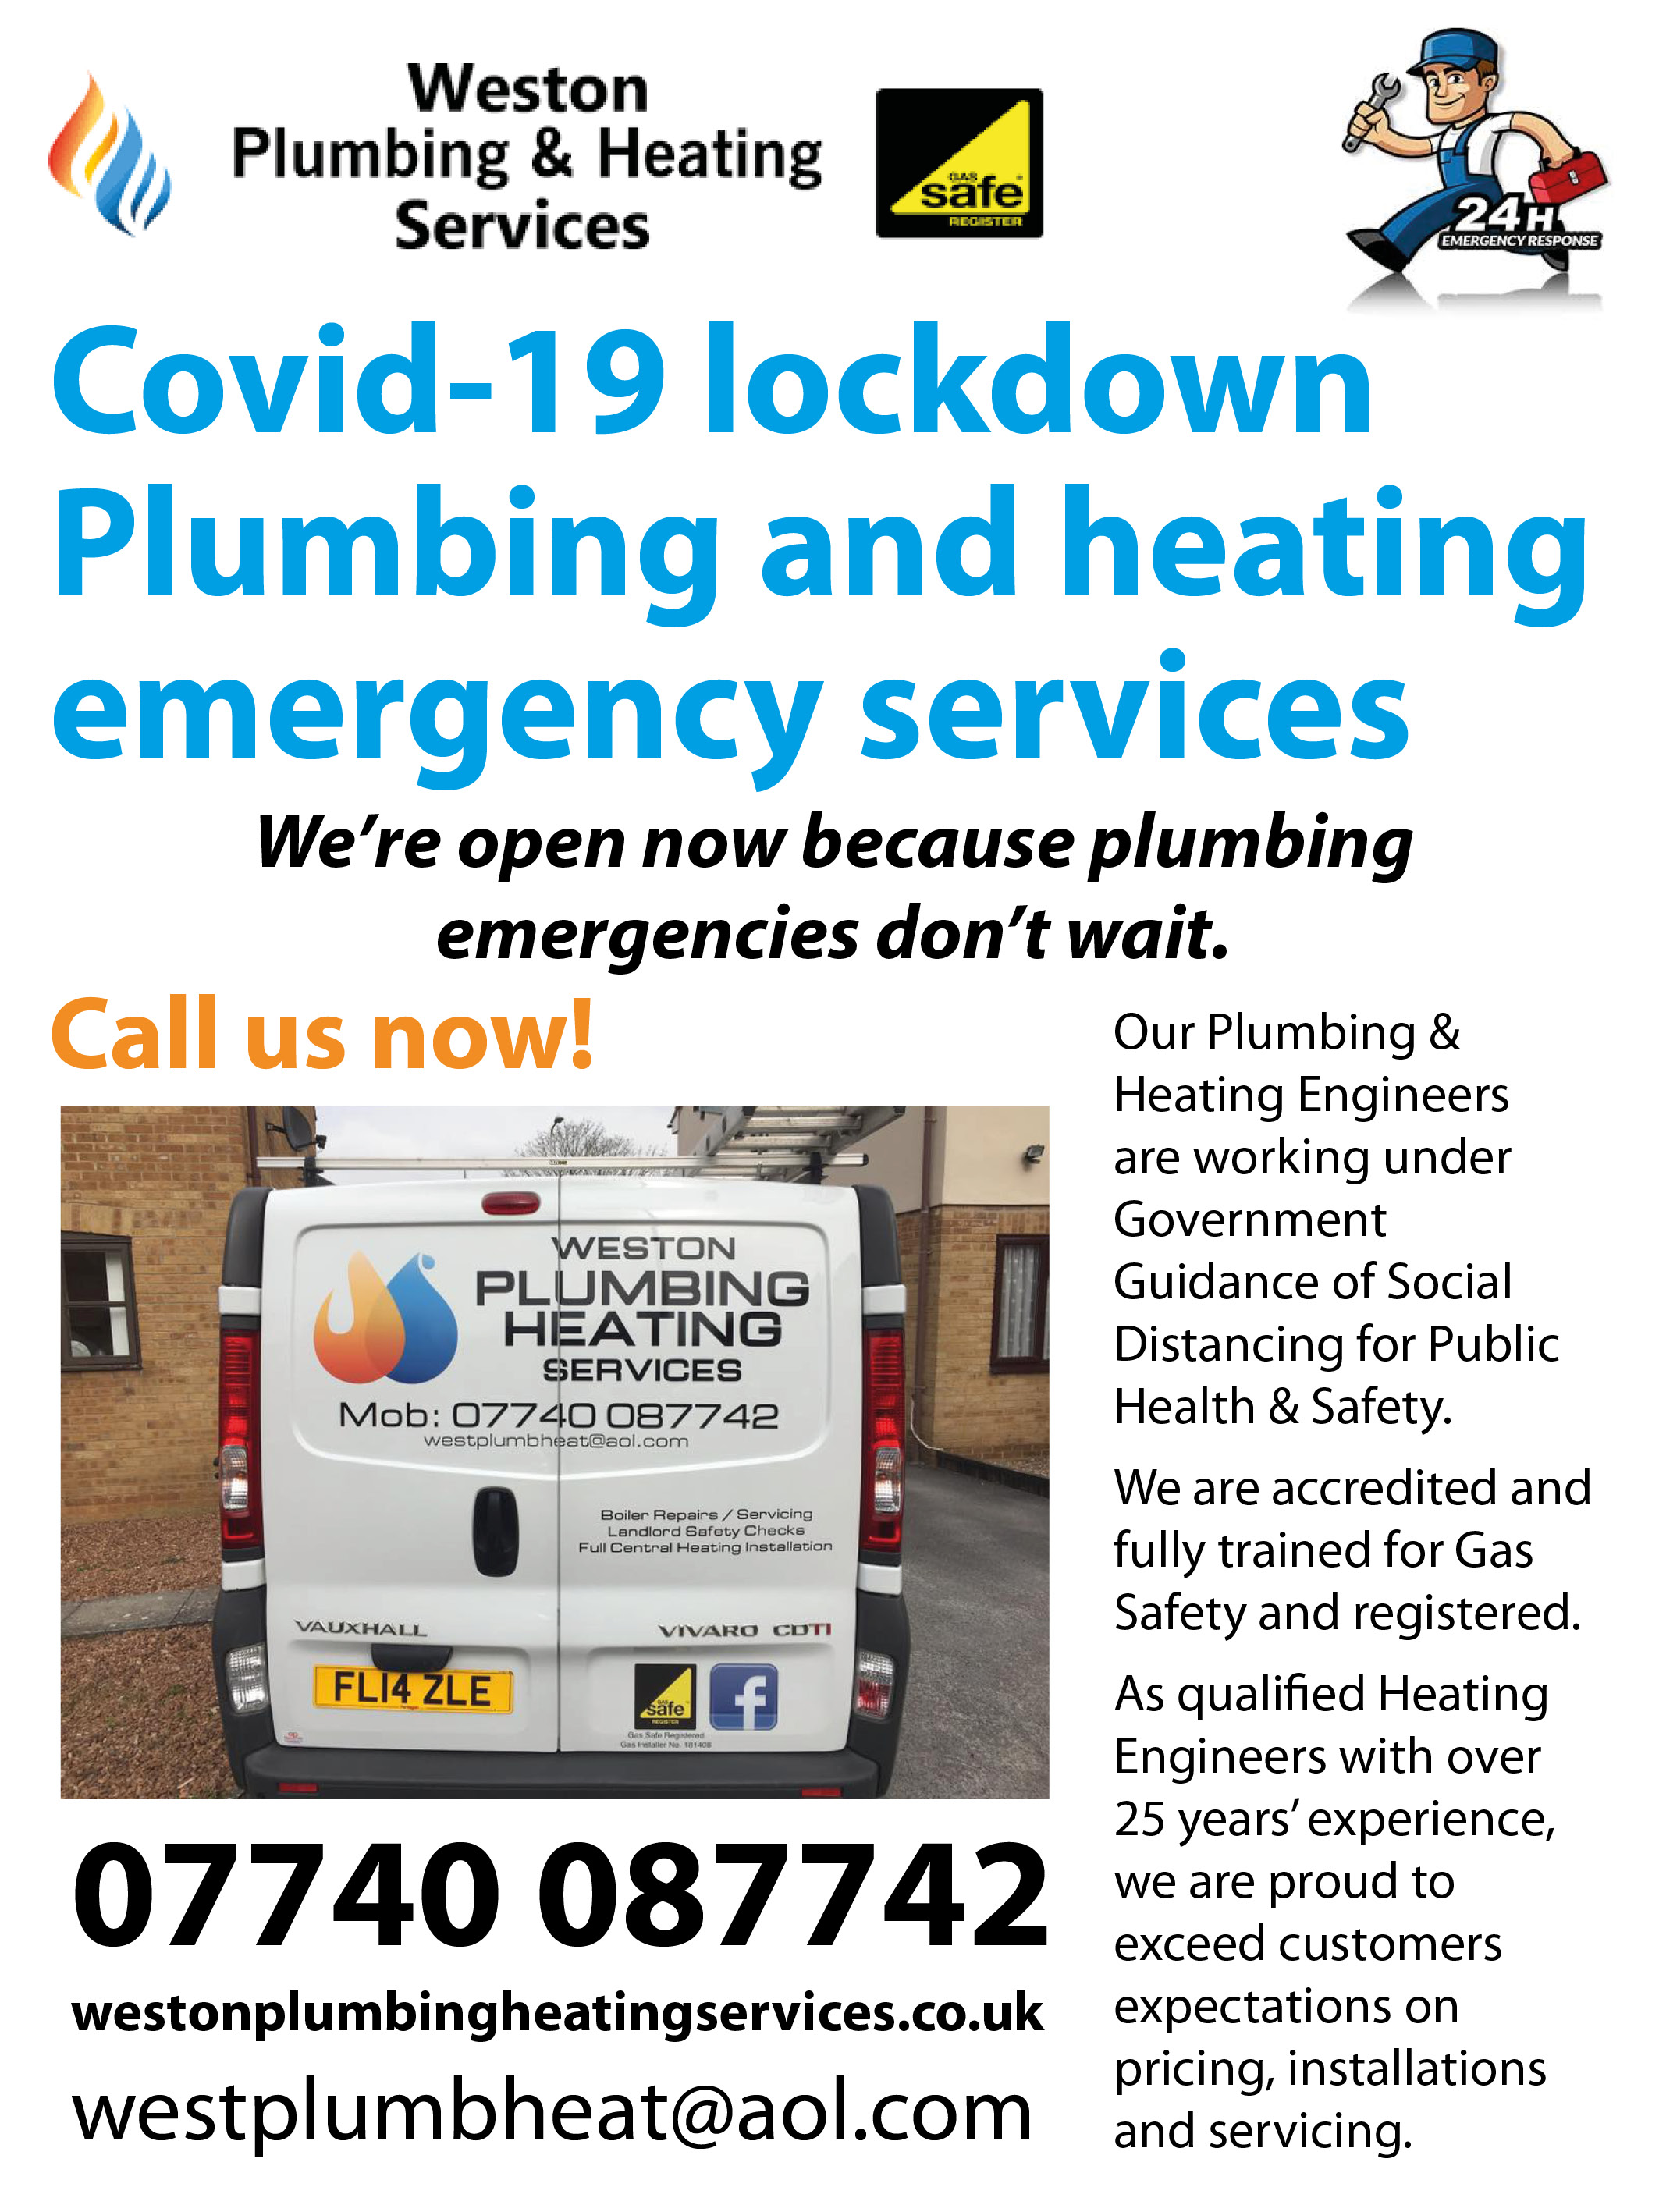 Covid-19 lockdown Plumbing and heating emergency services We're open now because plumbing emergencies don't wait.